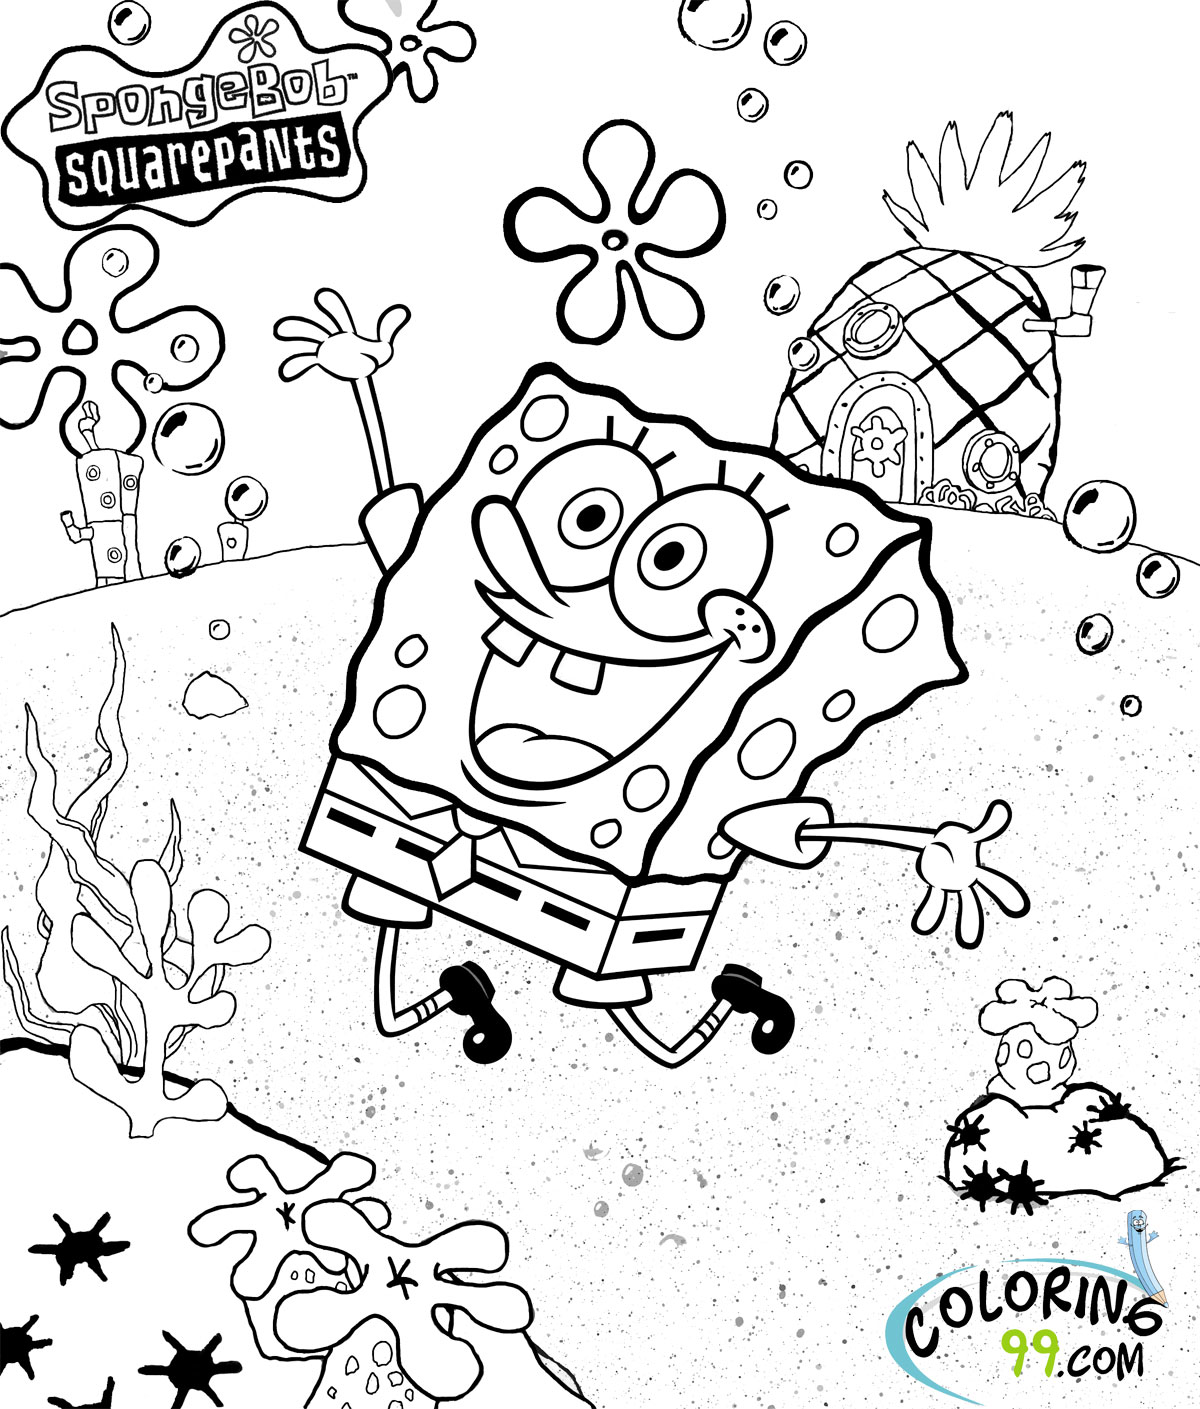 spongebob coloring pages for free coloring book pdf download pages for spongebob coloring free